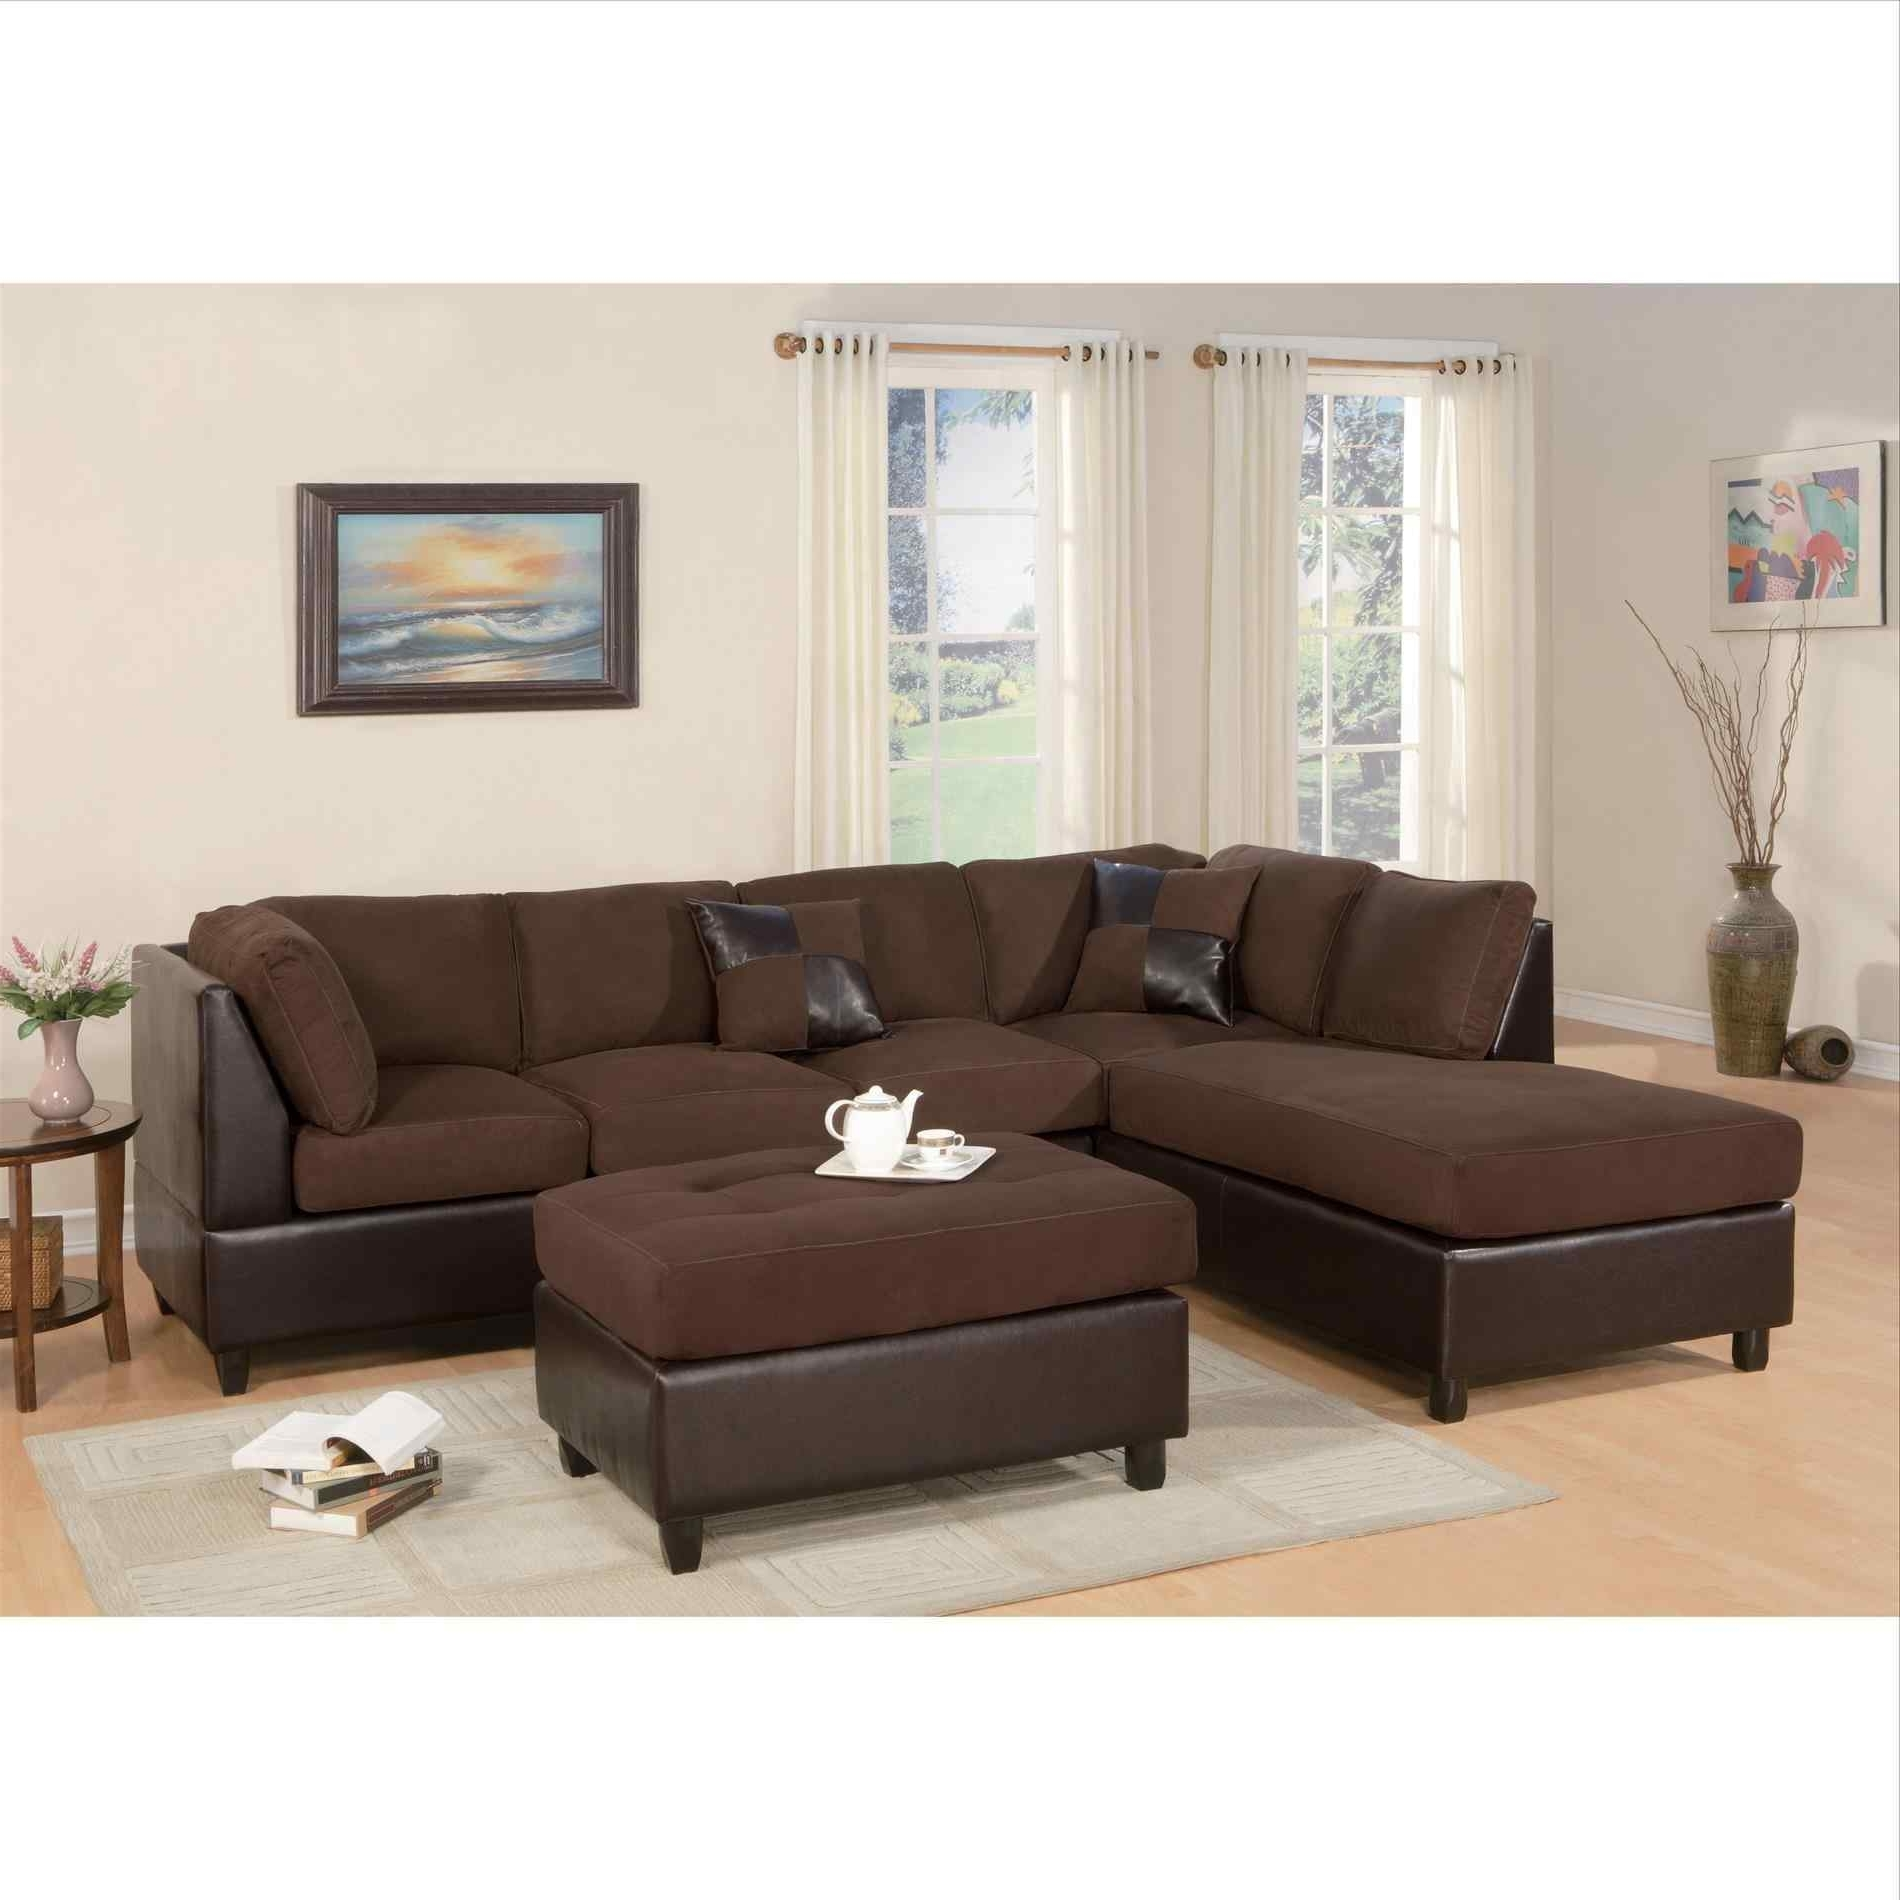 Cheap Sectional Sofas Houston Tx (View 17 of 20)